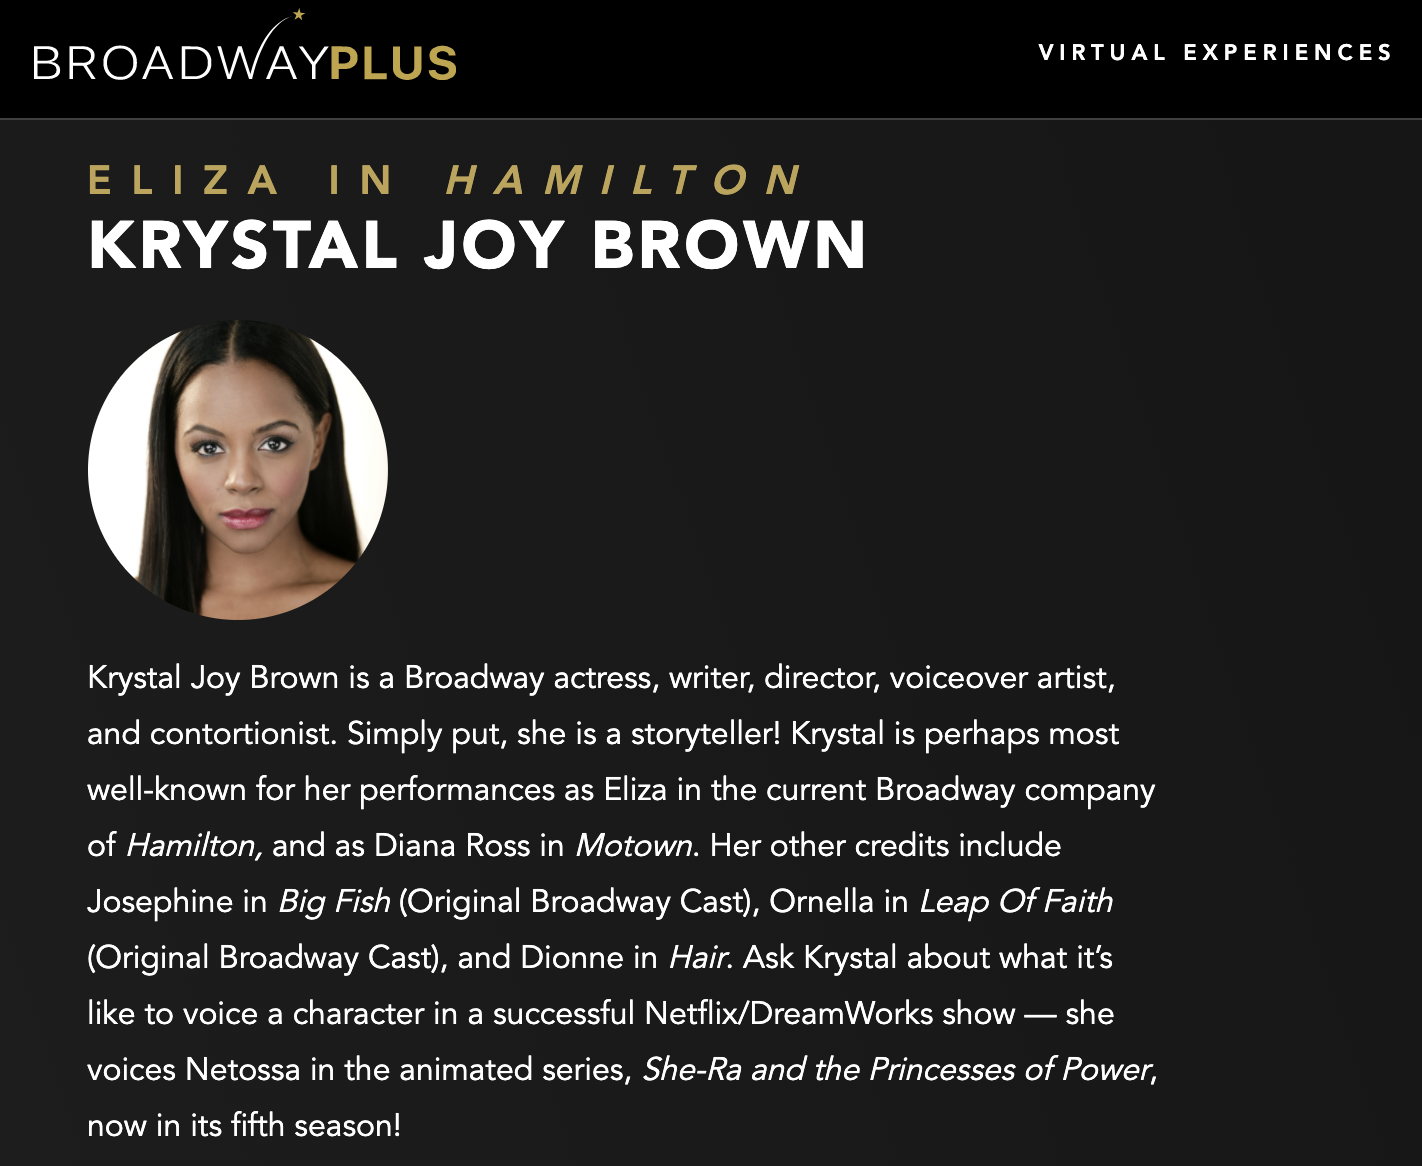 Meet KJB on Broadway Plus!